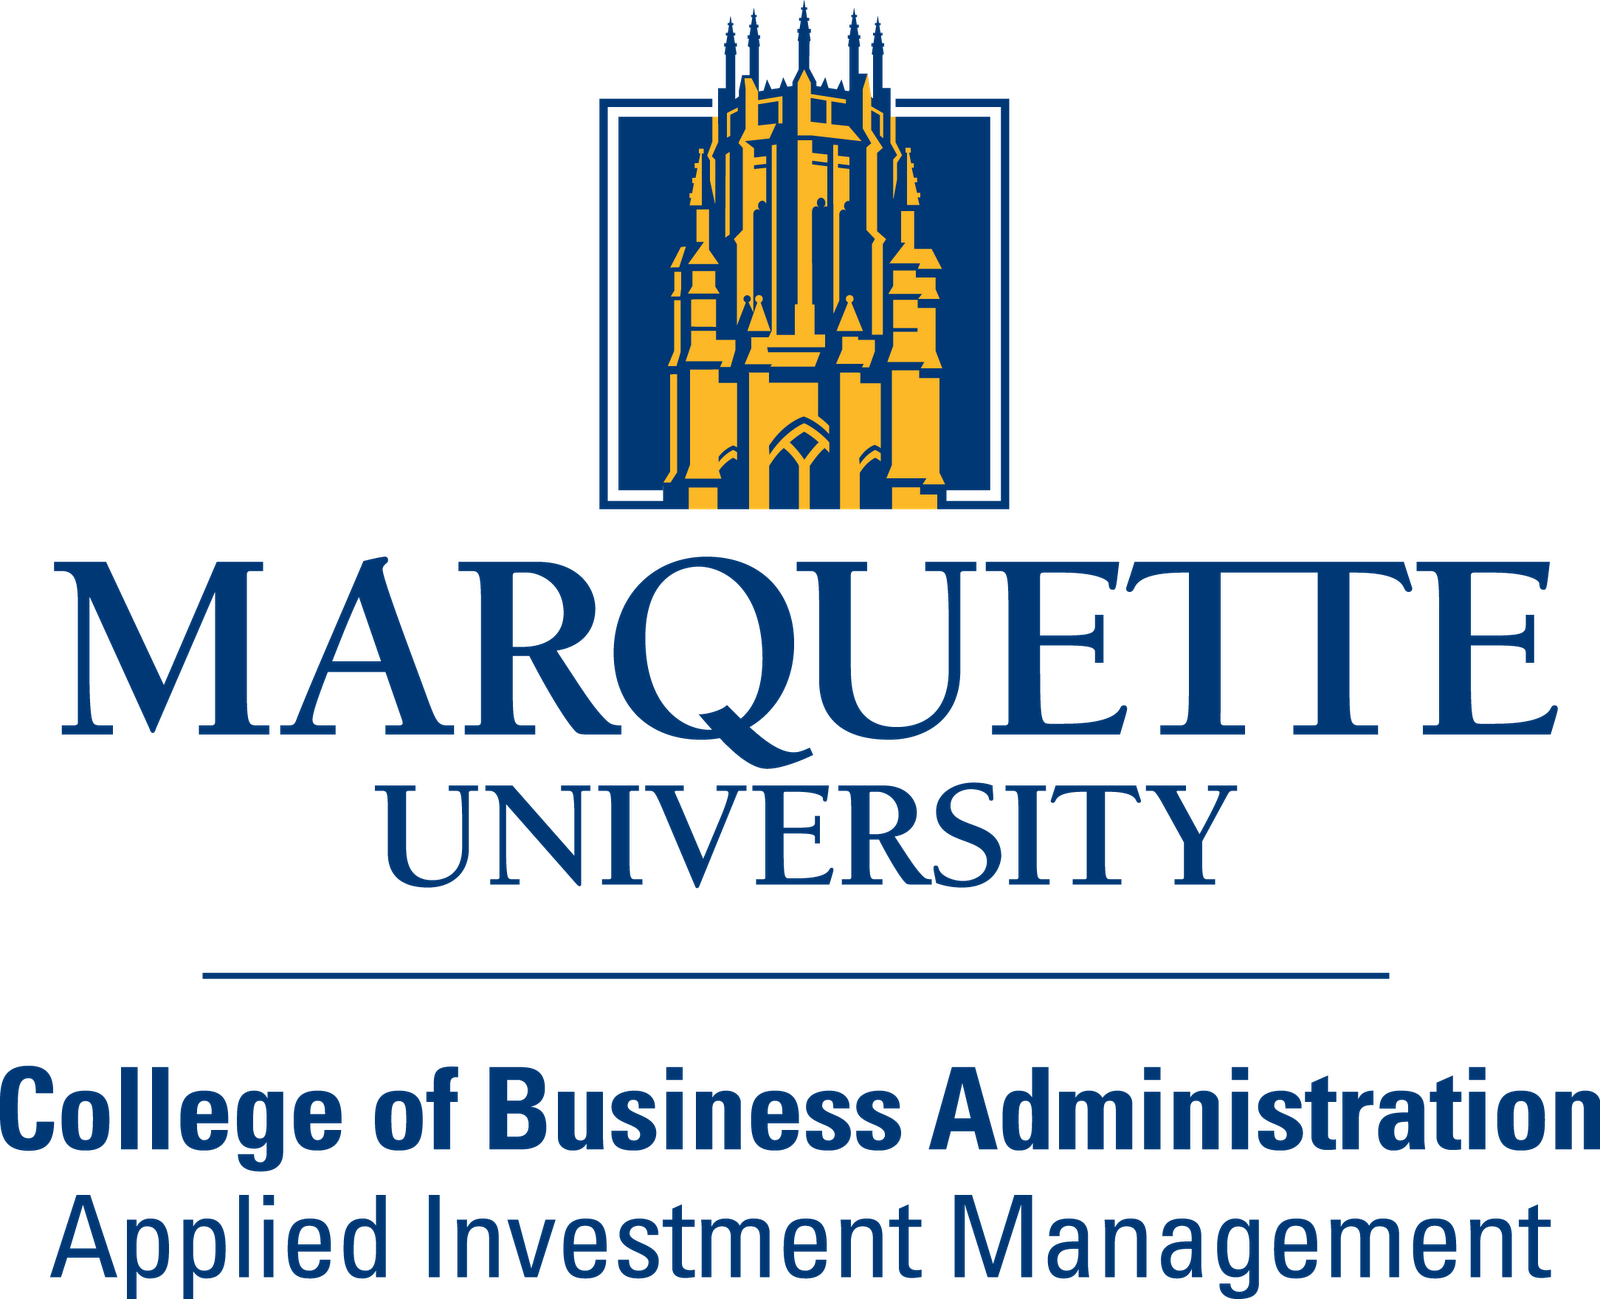 Marquette University, College of Business Administration